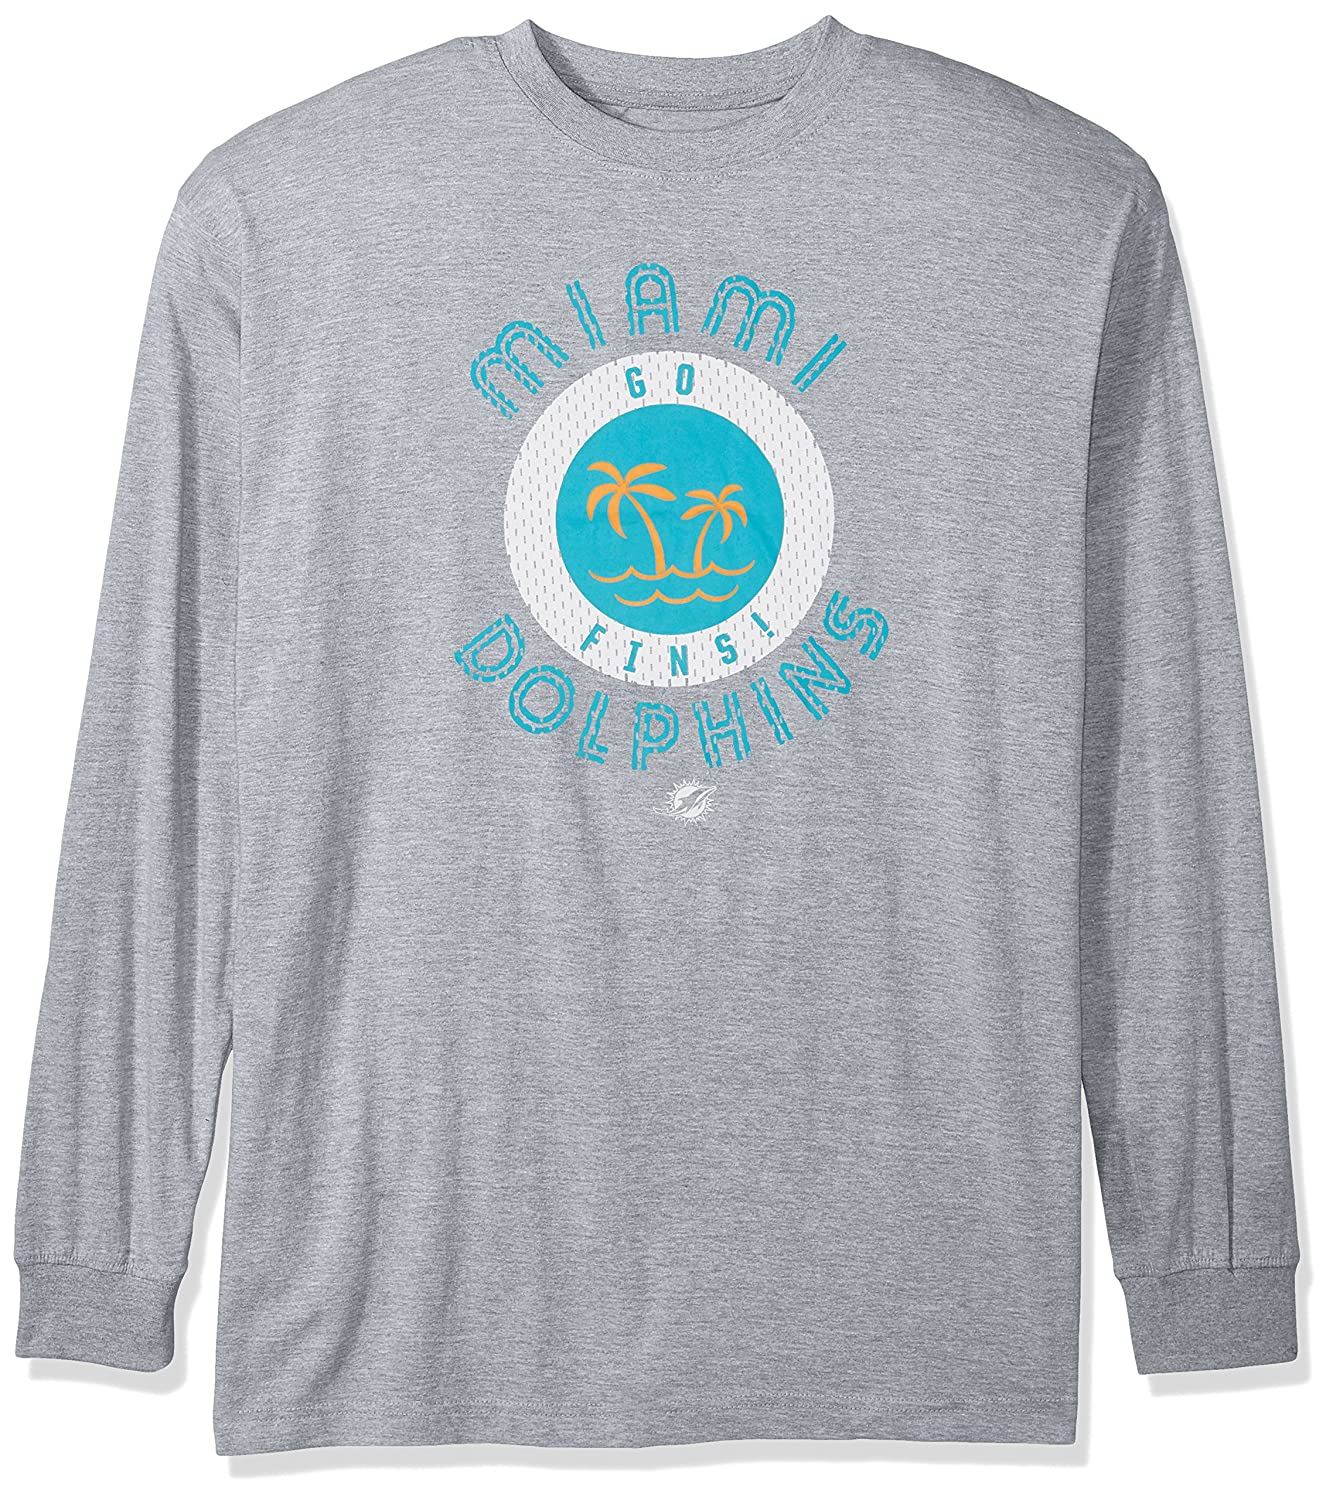 NFL Mens Dolphins L S Tee Screen Tee